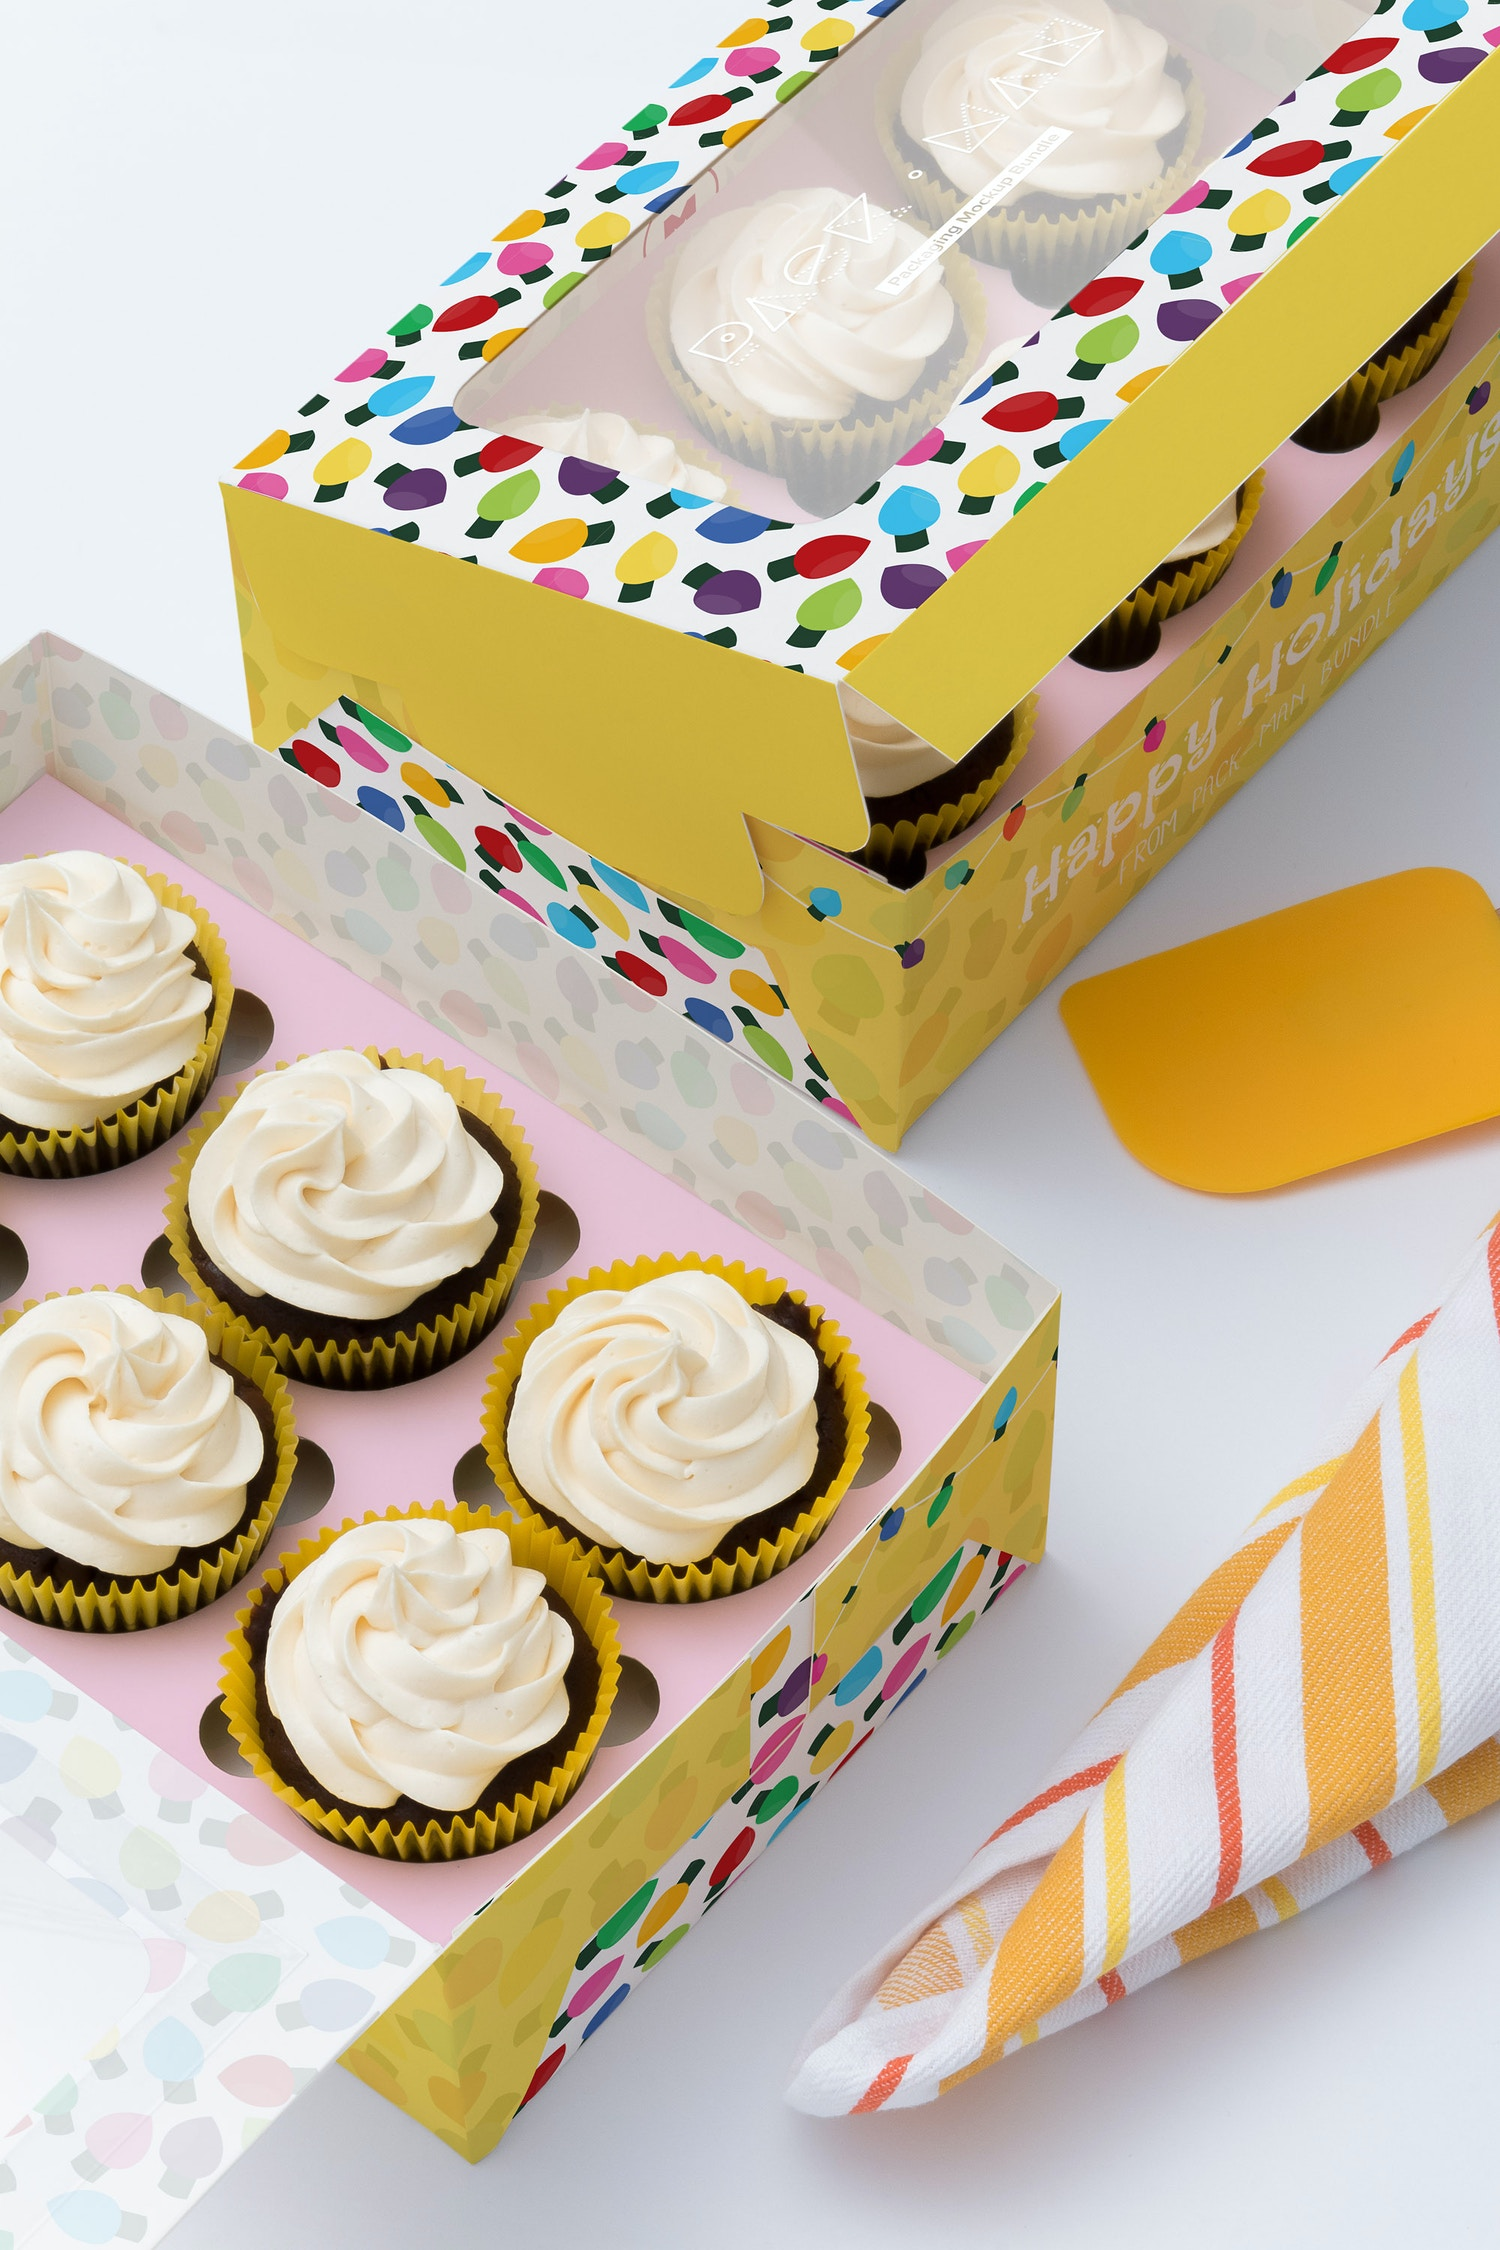 Six Cupcake Box Mockup 04 by Ktyellow  on Original Mockups